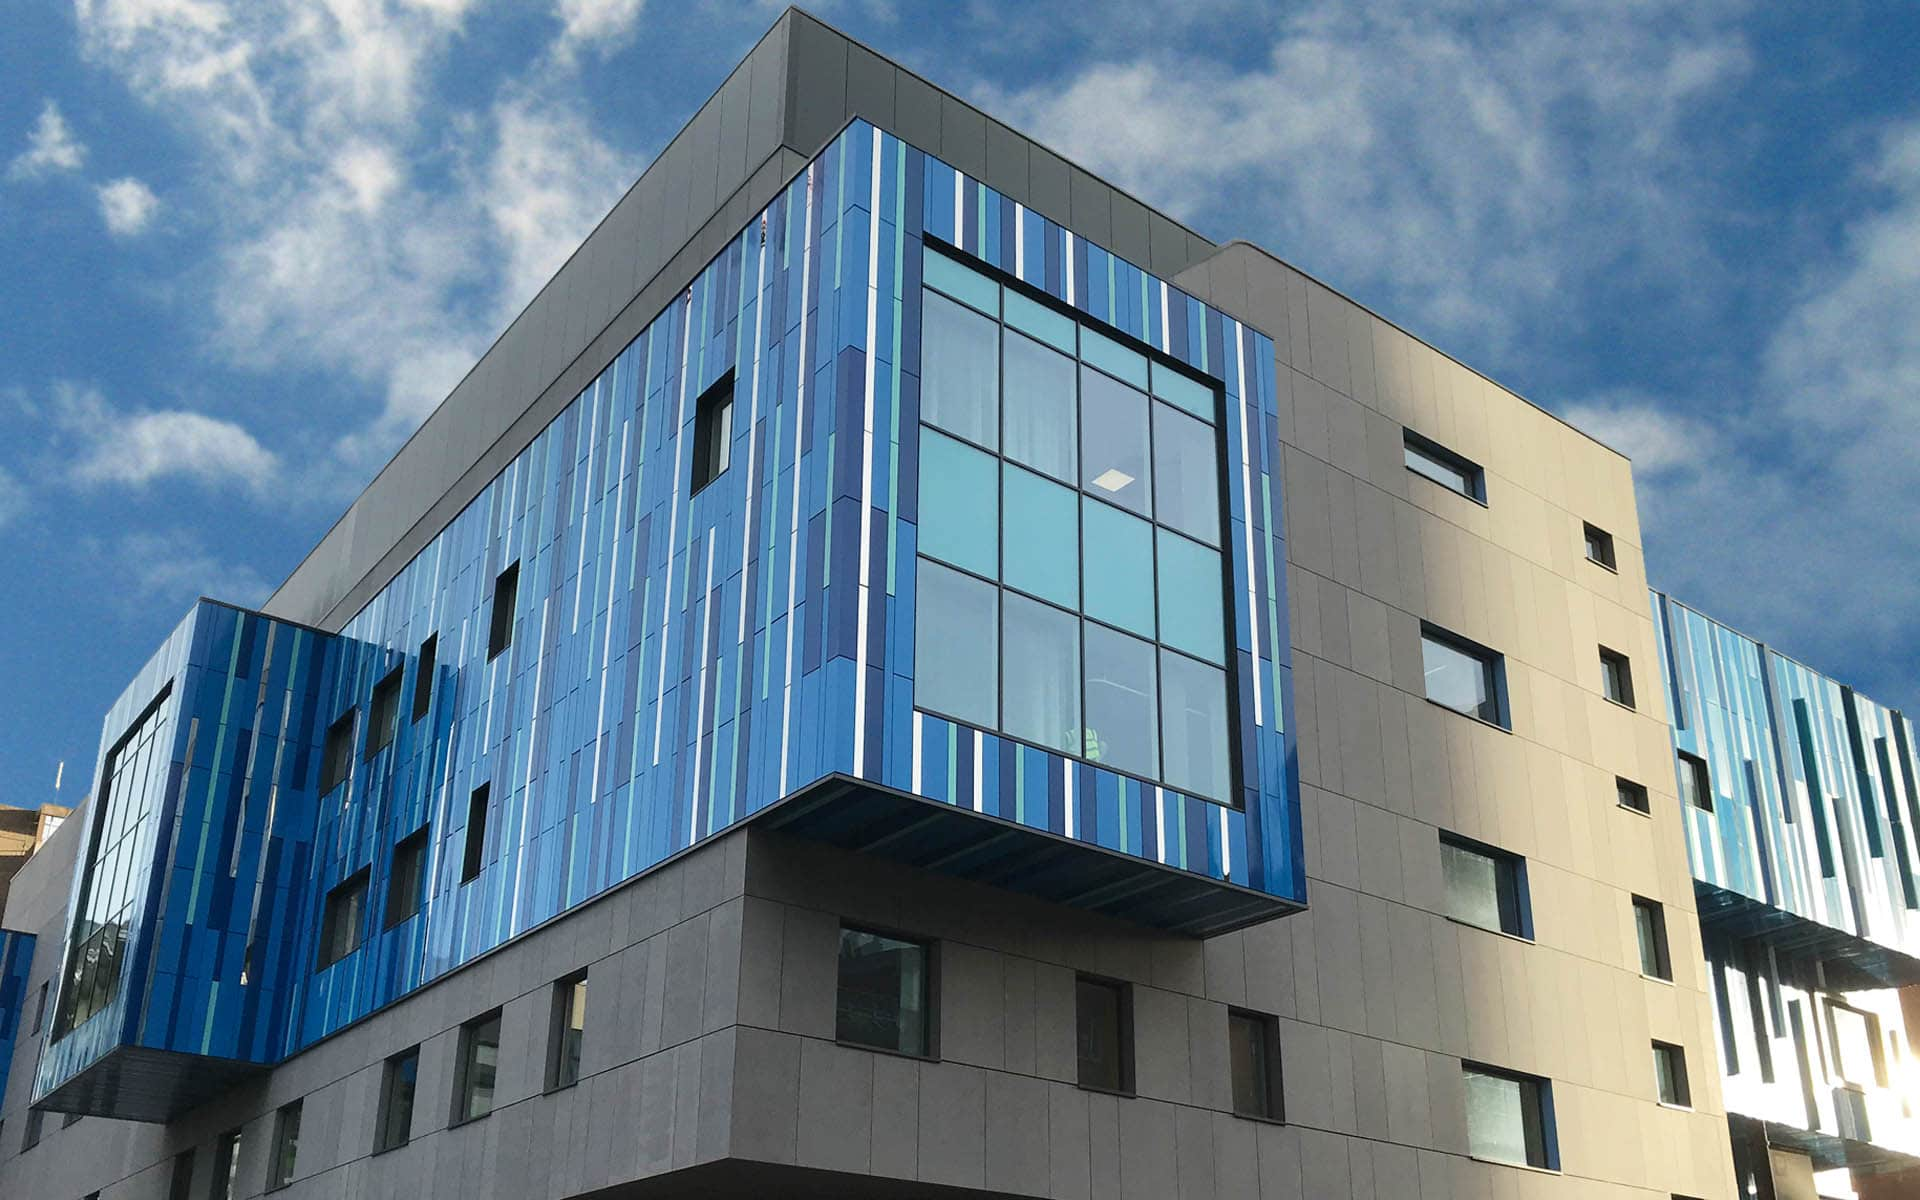 Birmingham Childrens Hospital Rainscreen Cladding Sotech